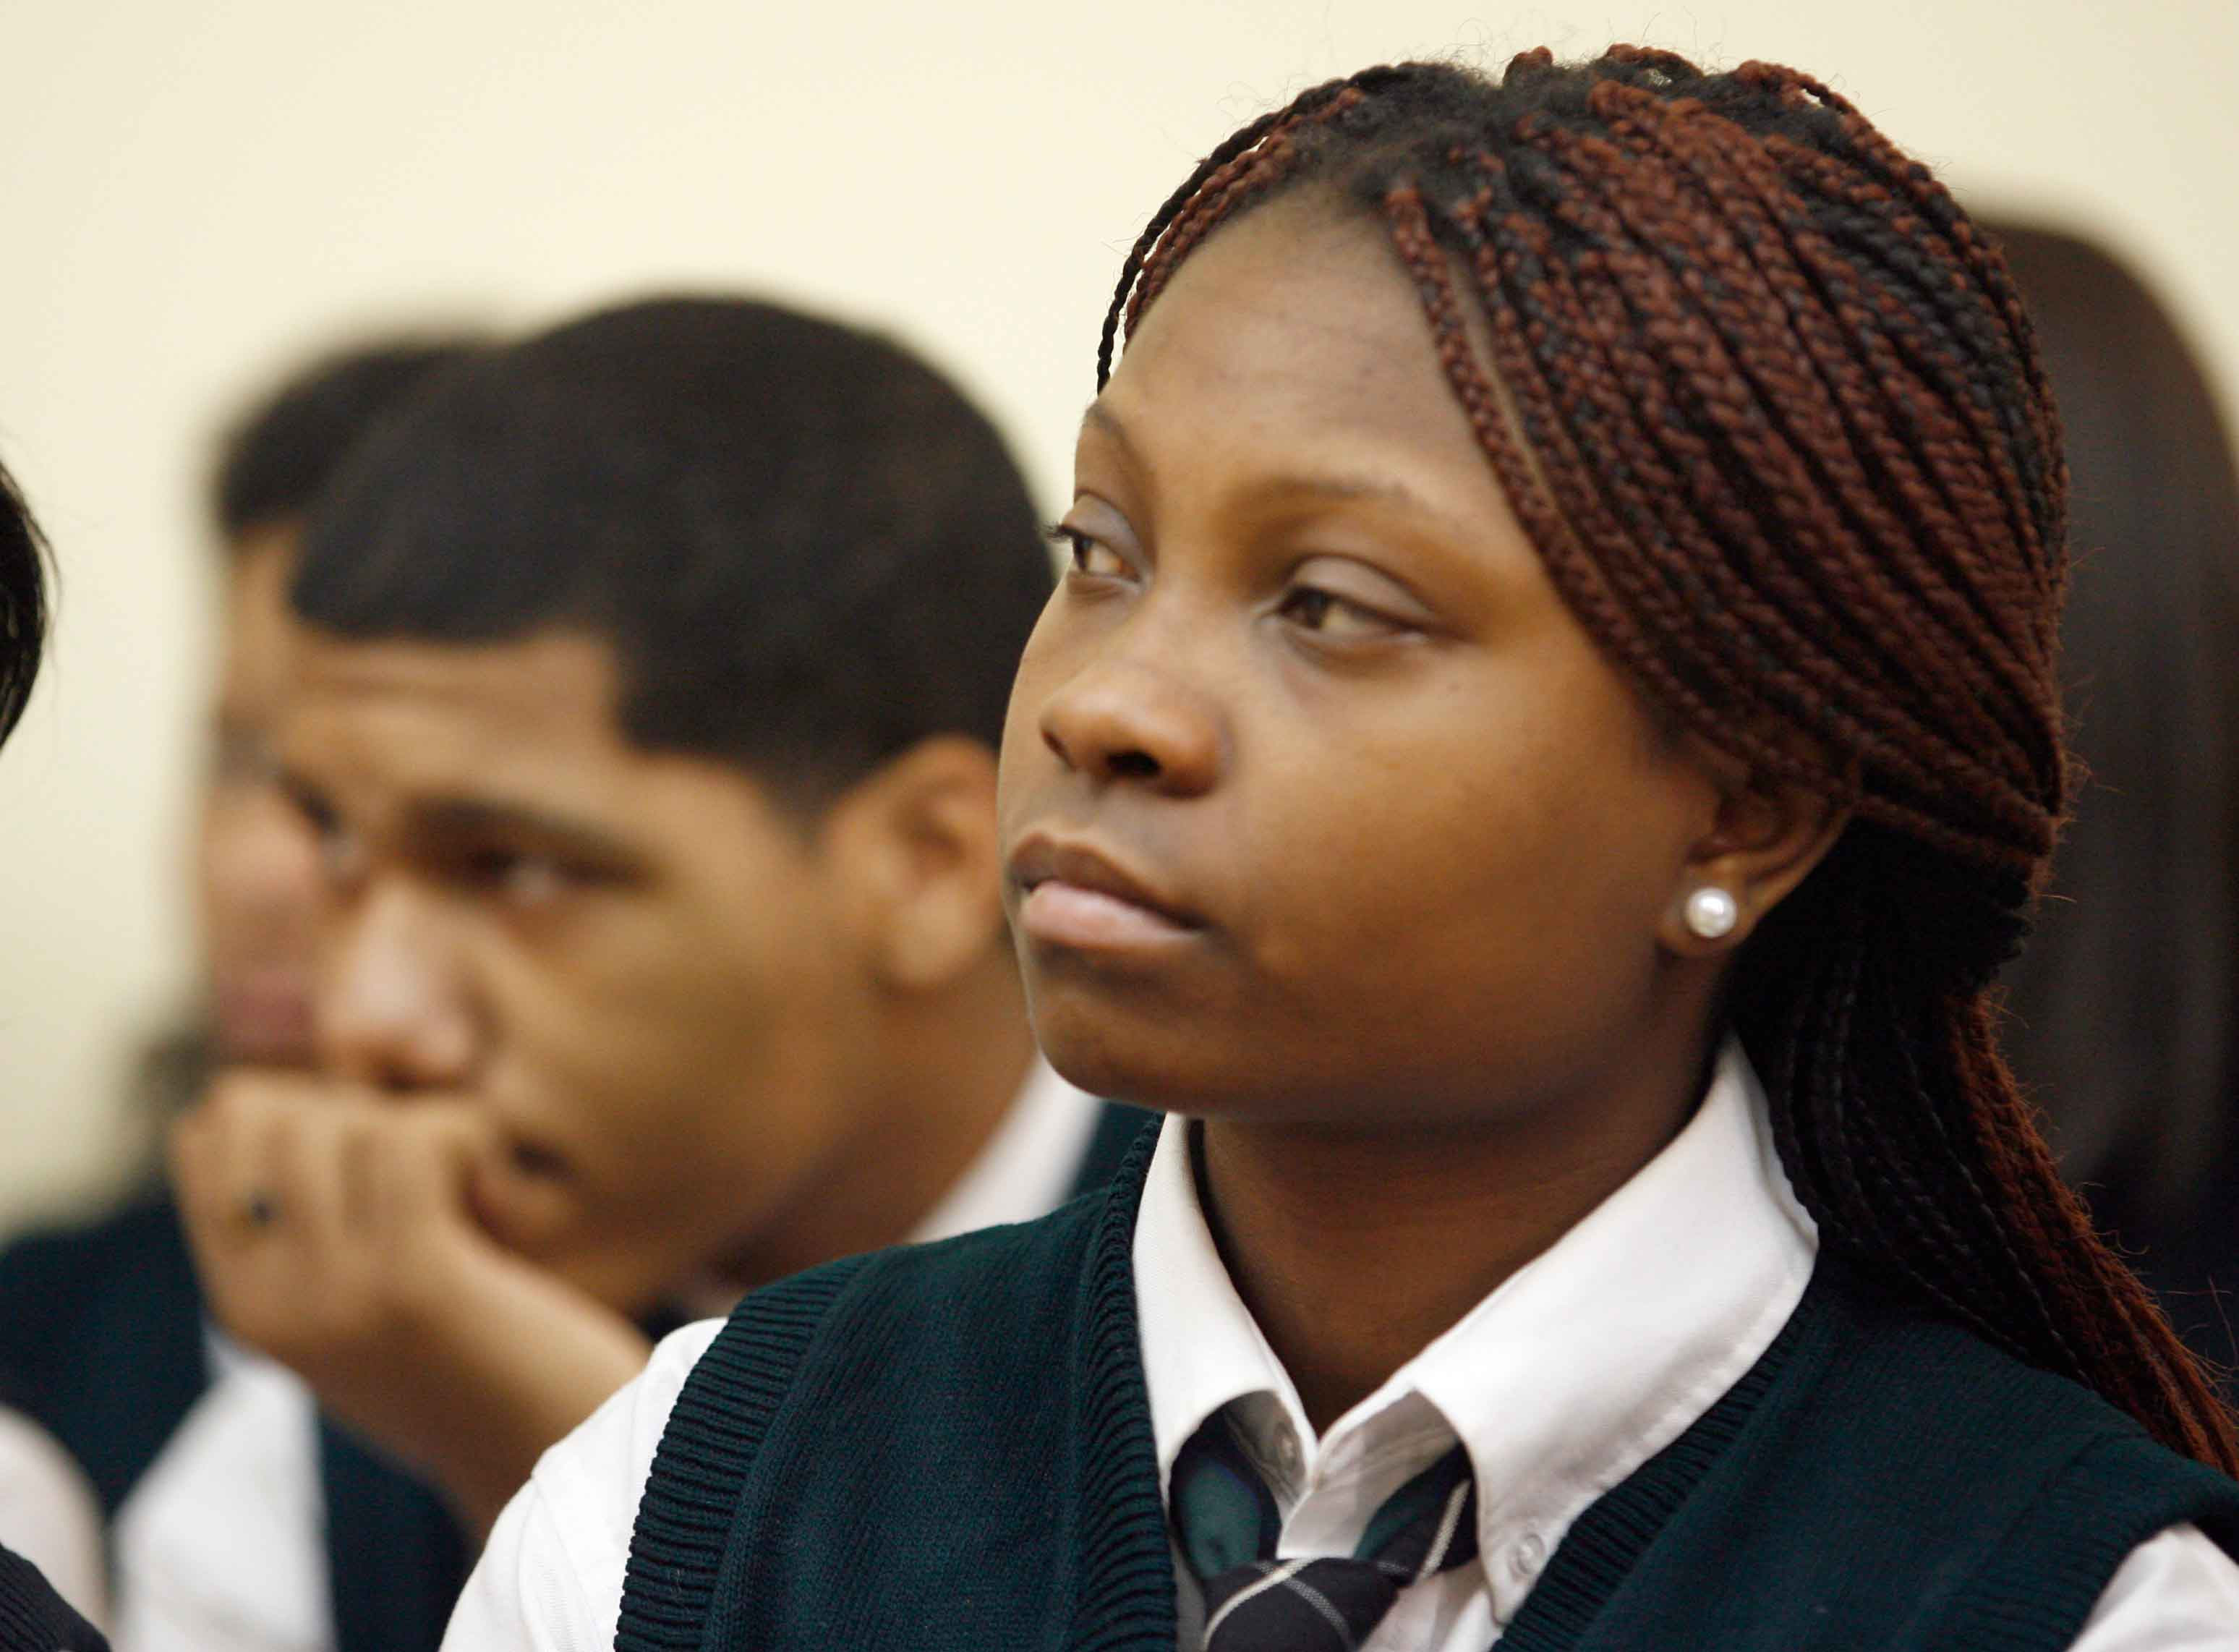 Minority Students listen to speaker at New Jersey Charter Schools Association Convention.